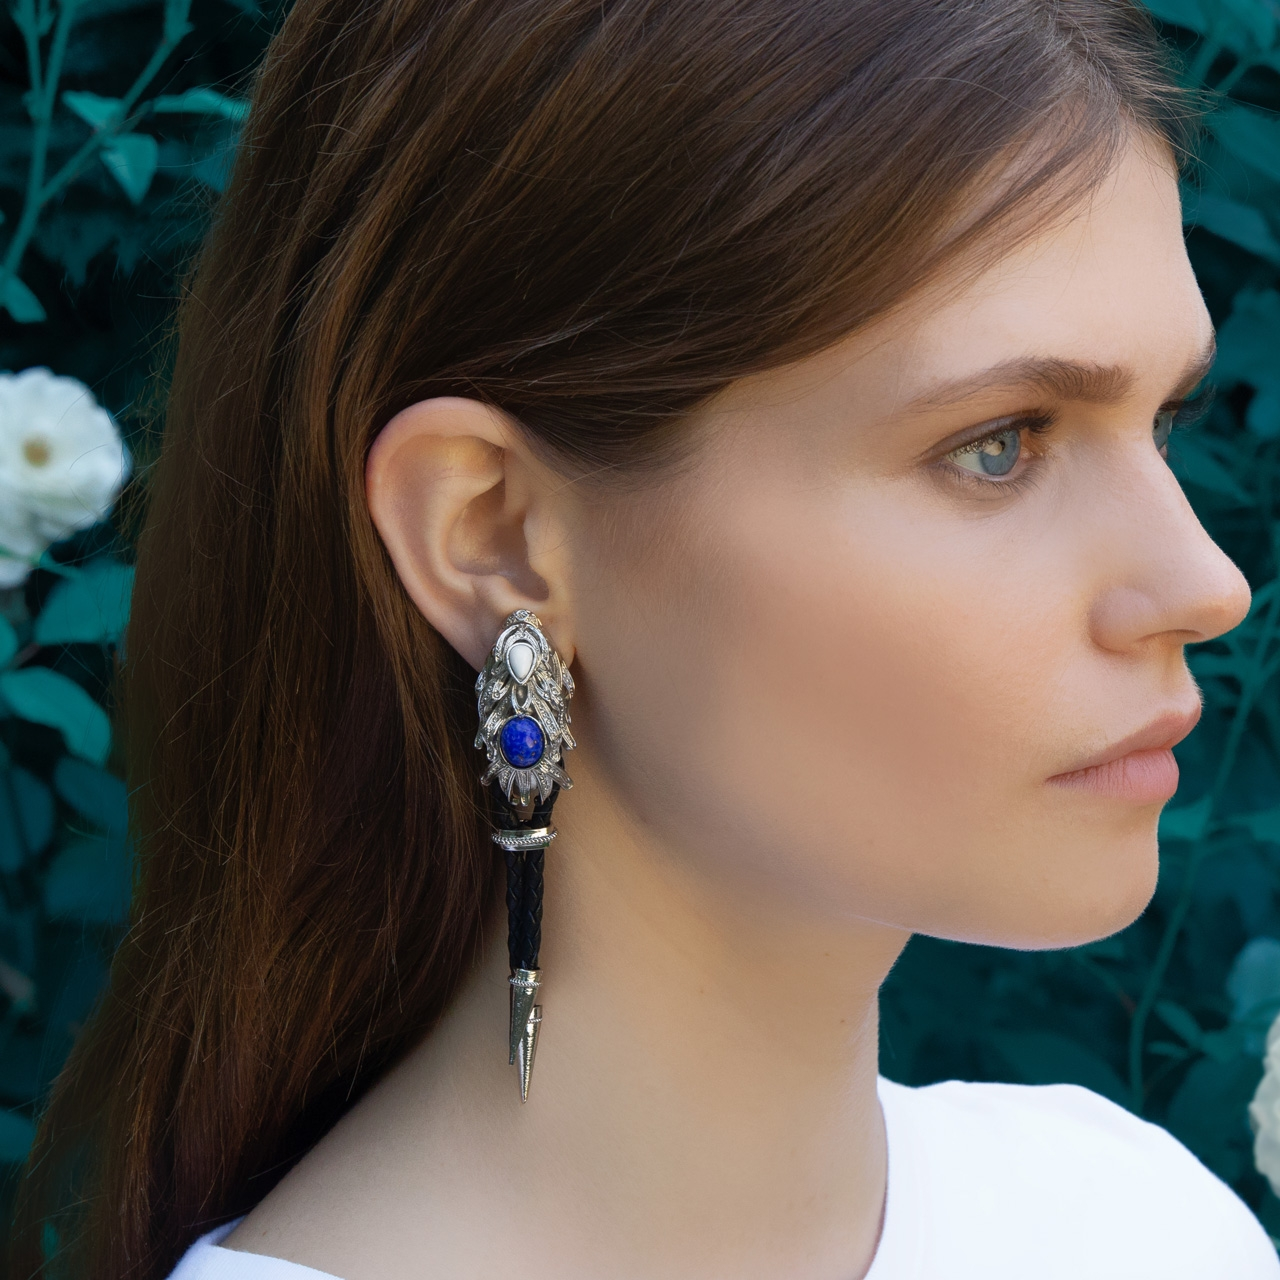 White Silver Dragonfish Luxury Earrings by Sonia Petroff on curated-crowd.com